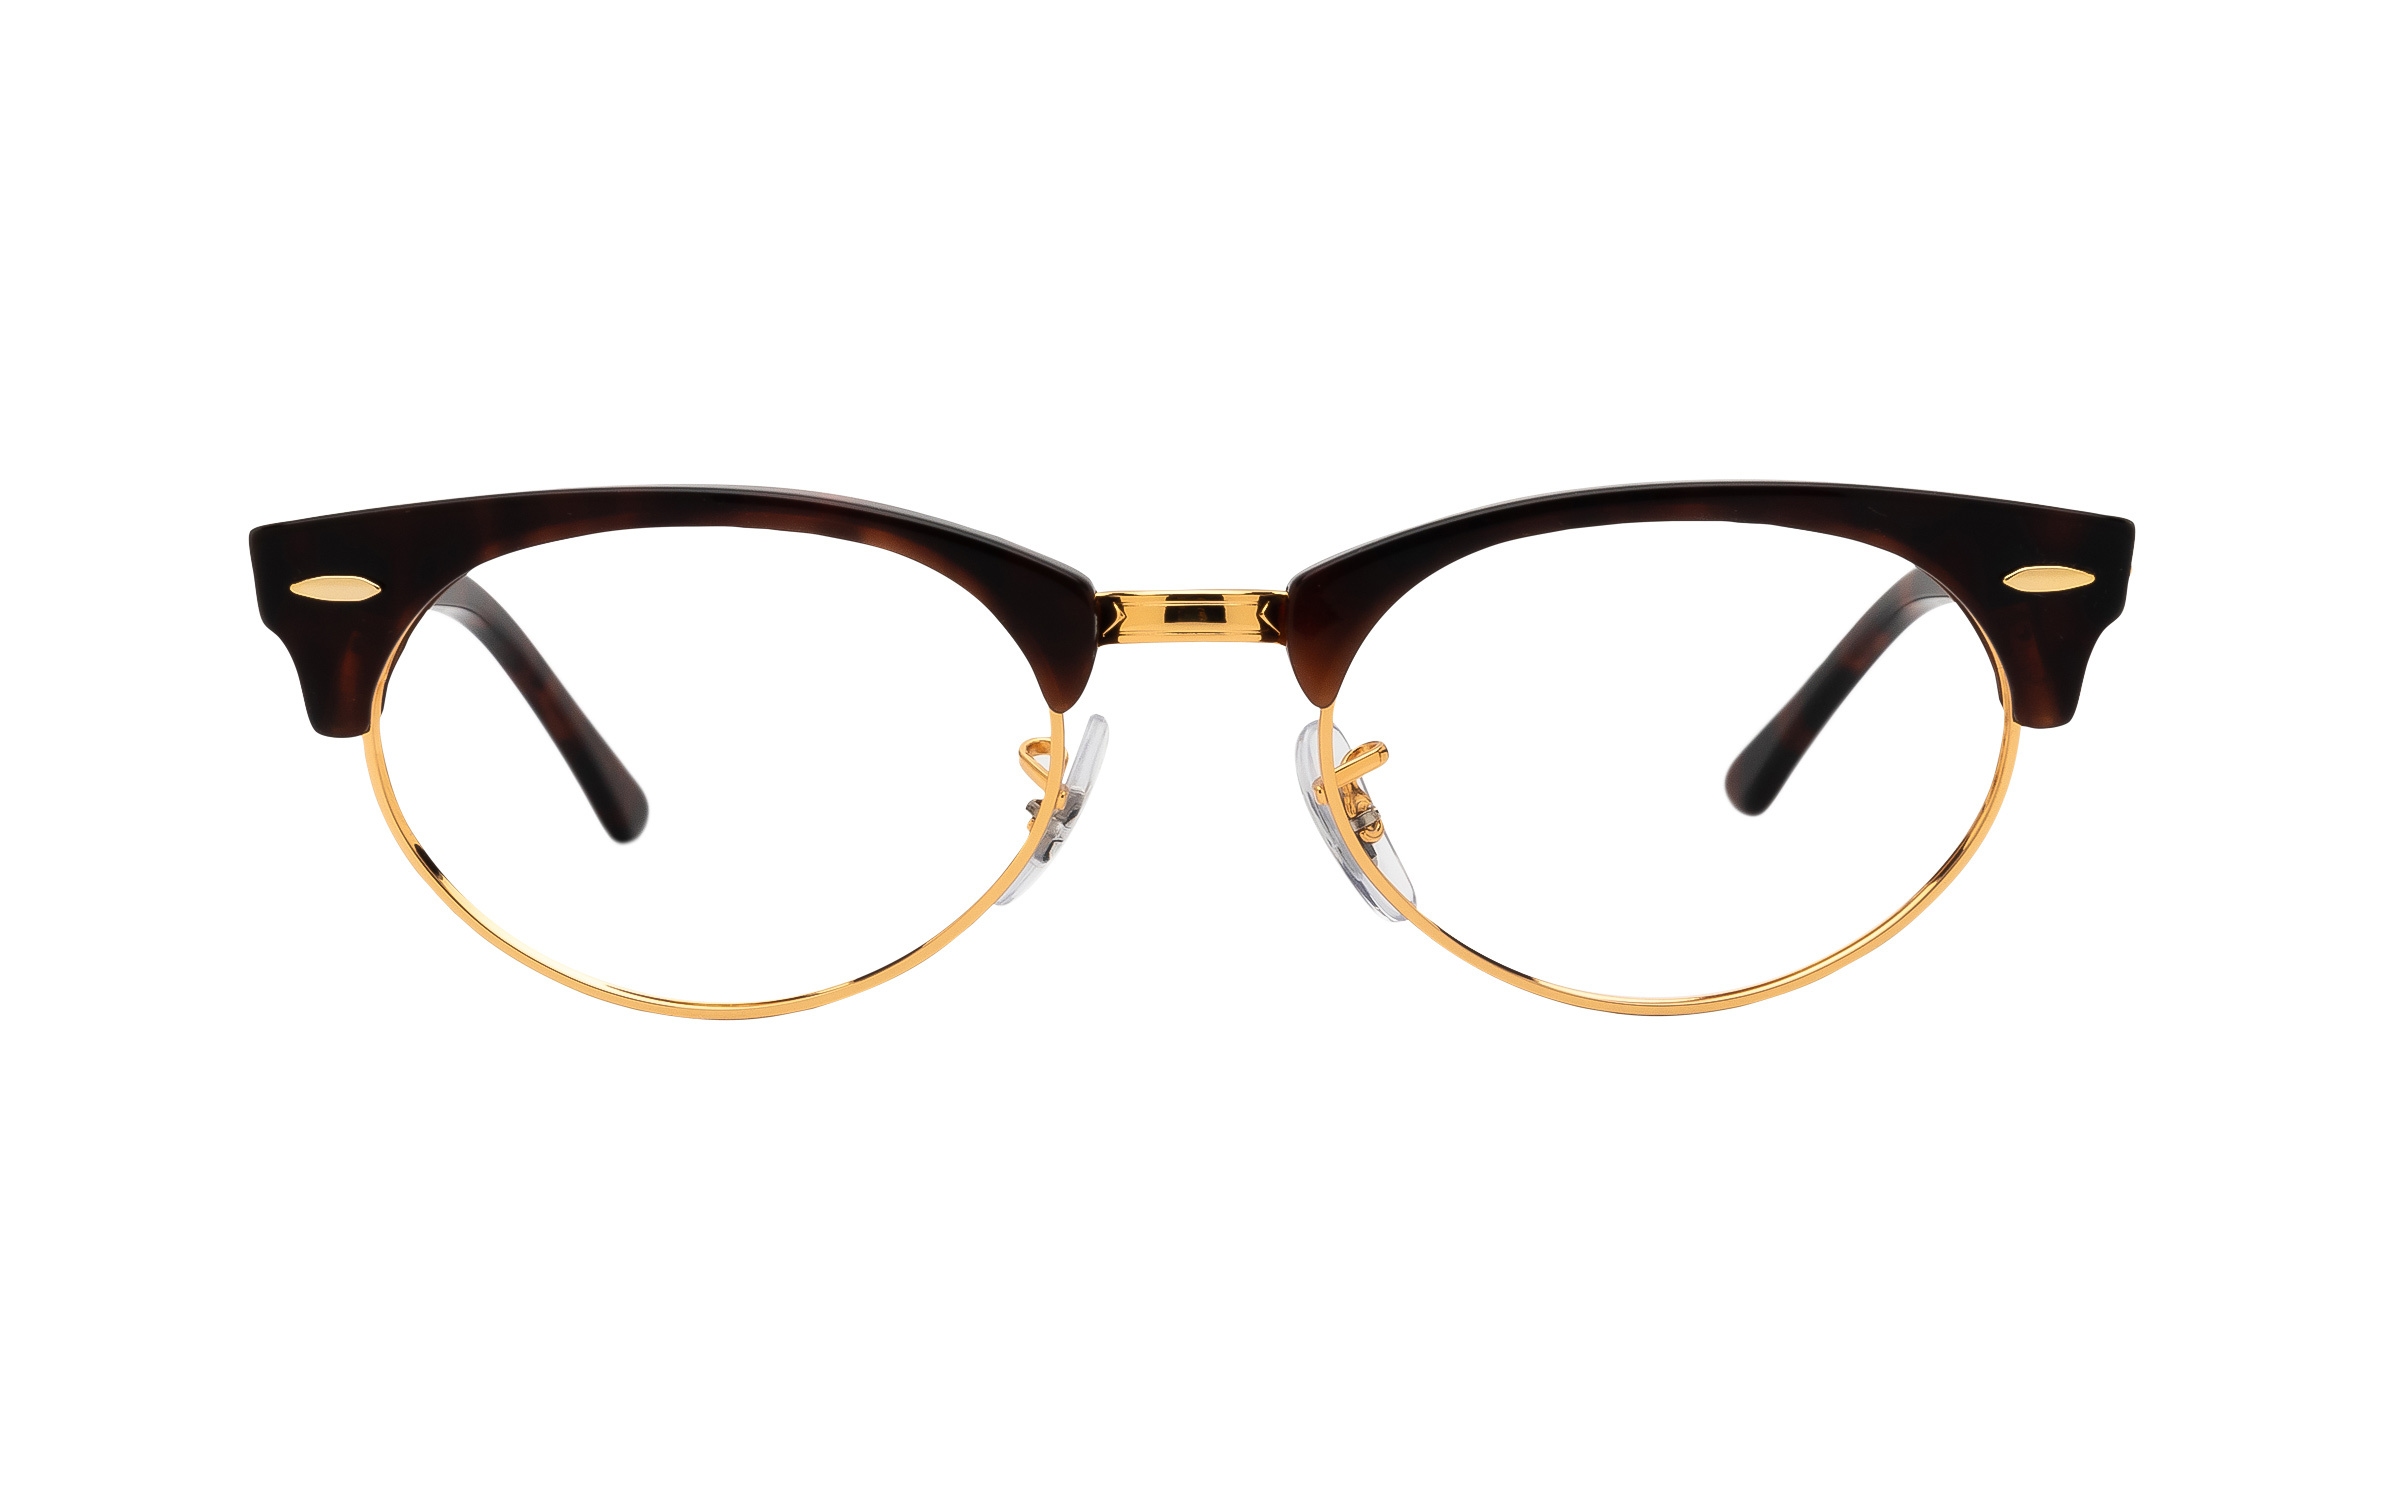 http://www.coastal.com/ - Ray-Ban Clubmaster Oval RX3946V 8058 (50) Eyeglasses and Frame in Brown/Tortoise   Acetate/Metal – Online Coastal